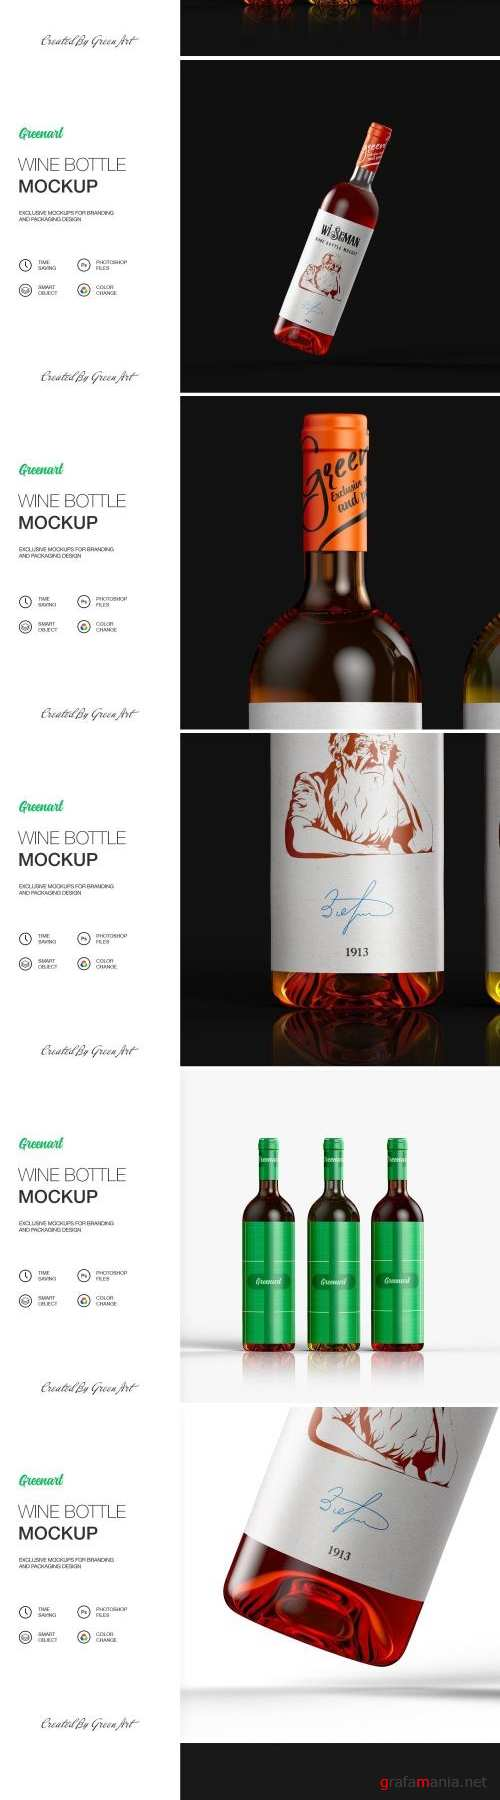 Clear Glass Bottle With Wine-Mockup - 2422440